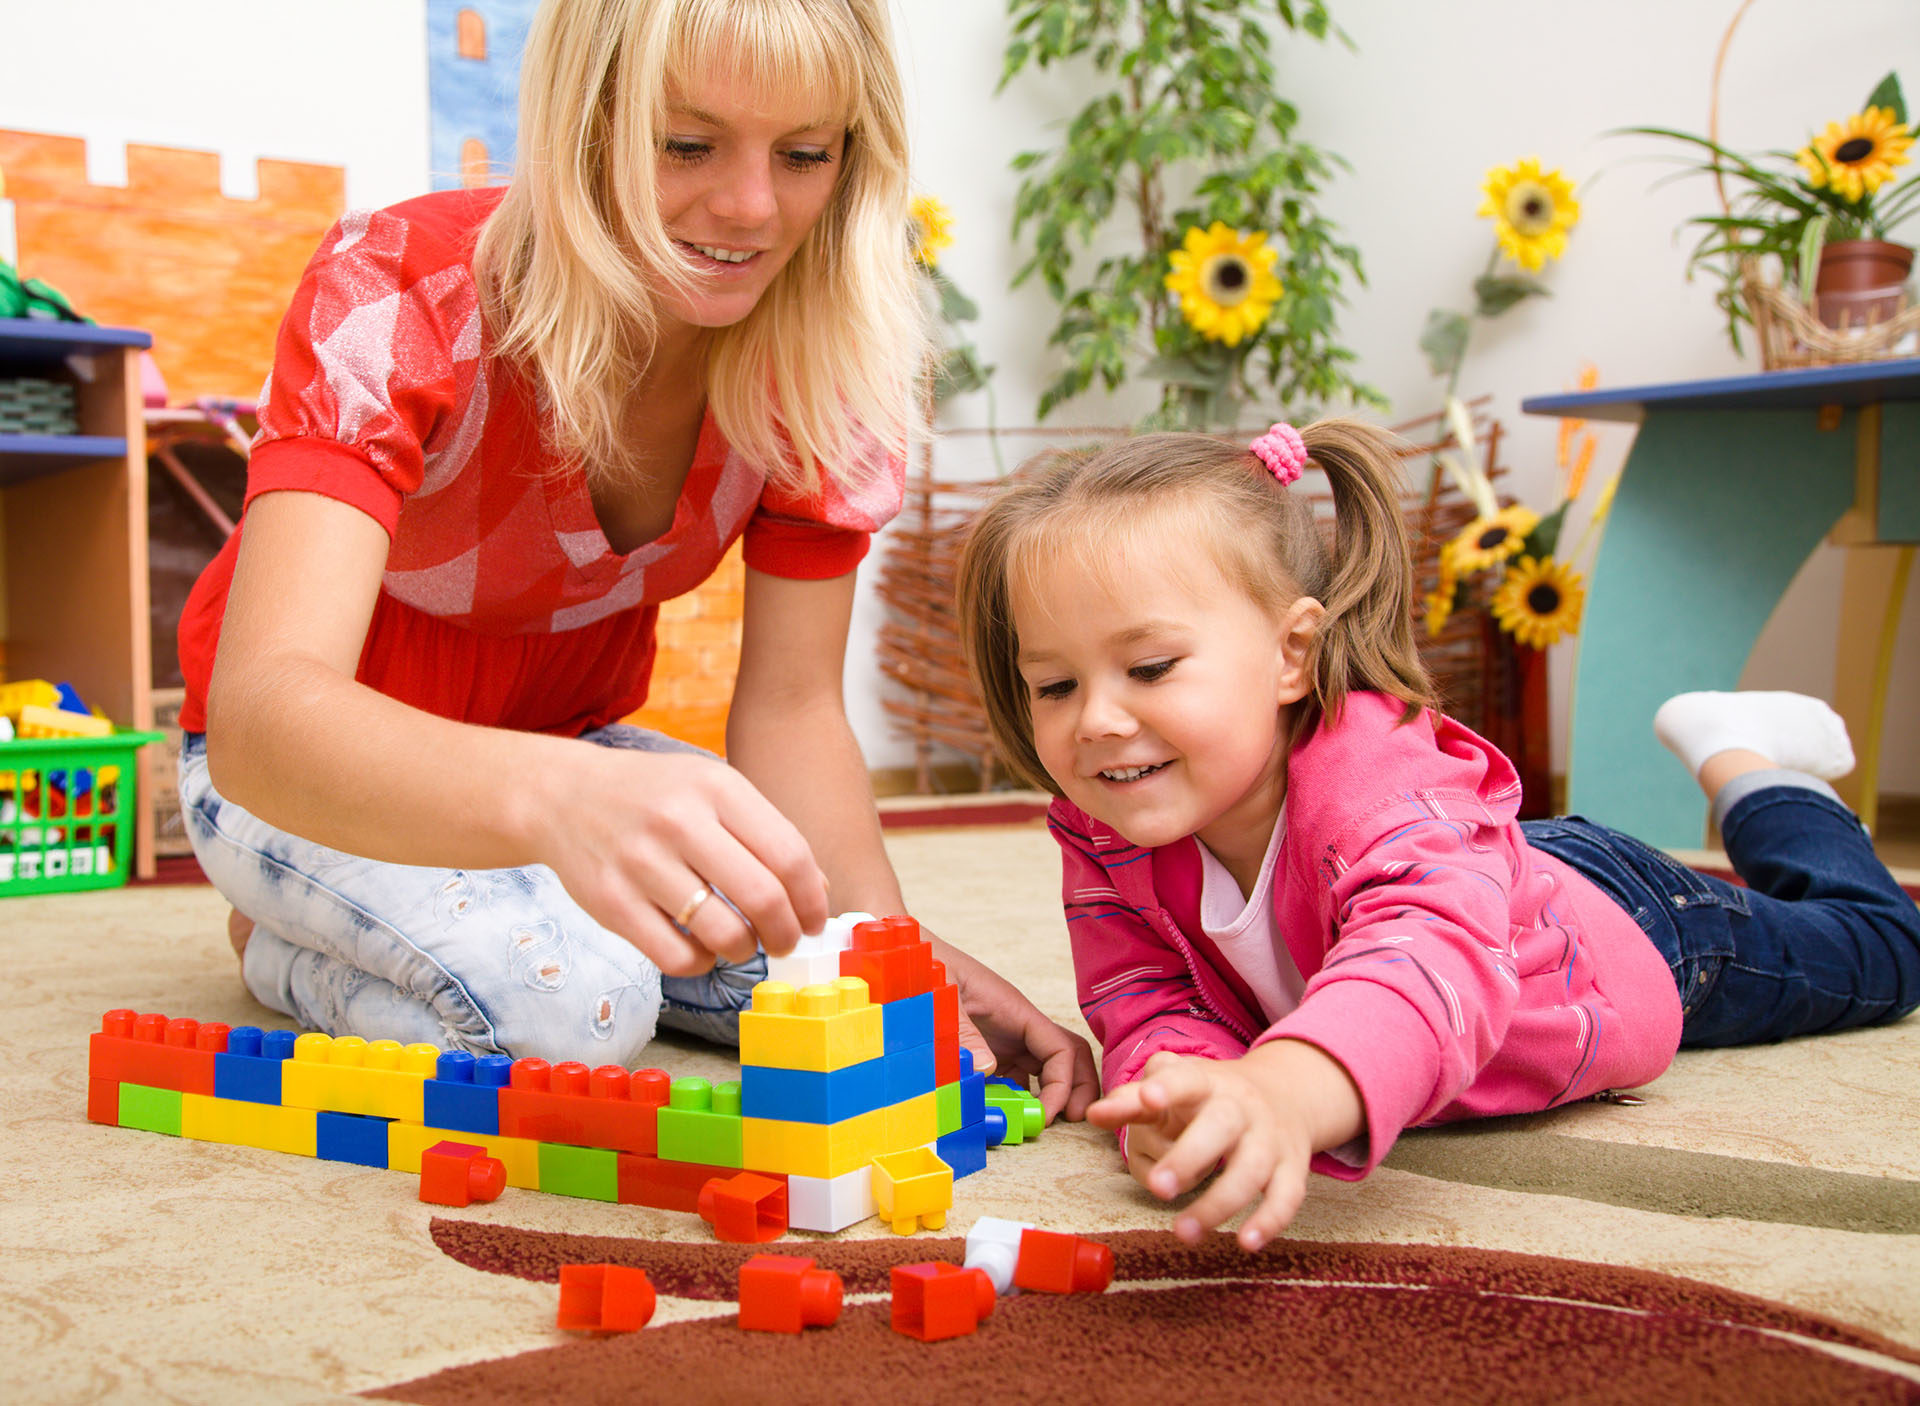 Welsh Government approves £60 million to support extension of free childcare